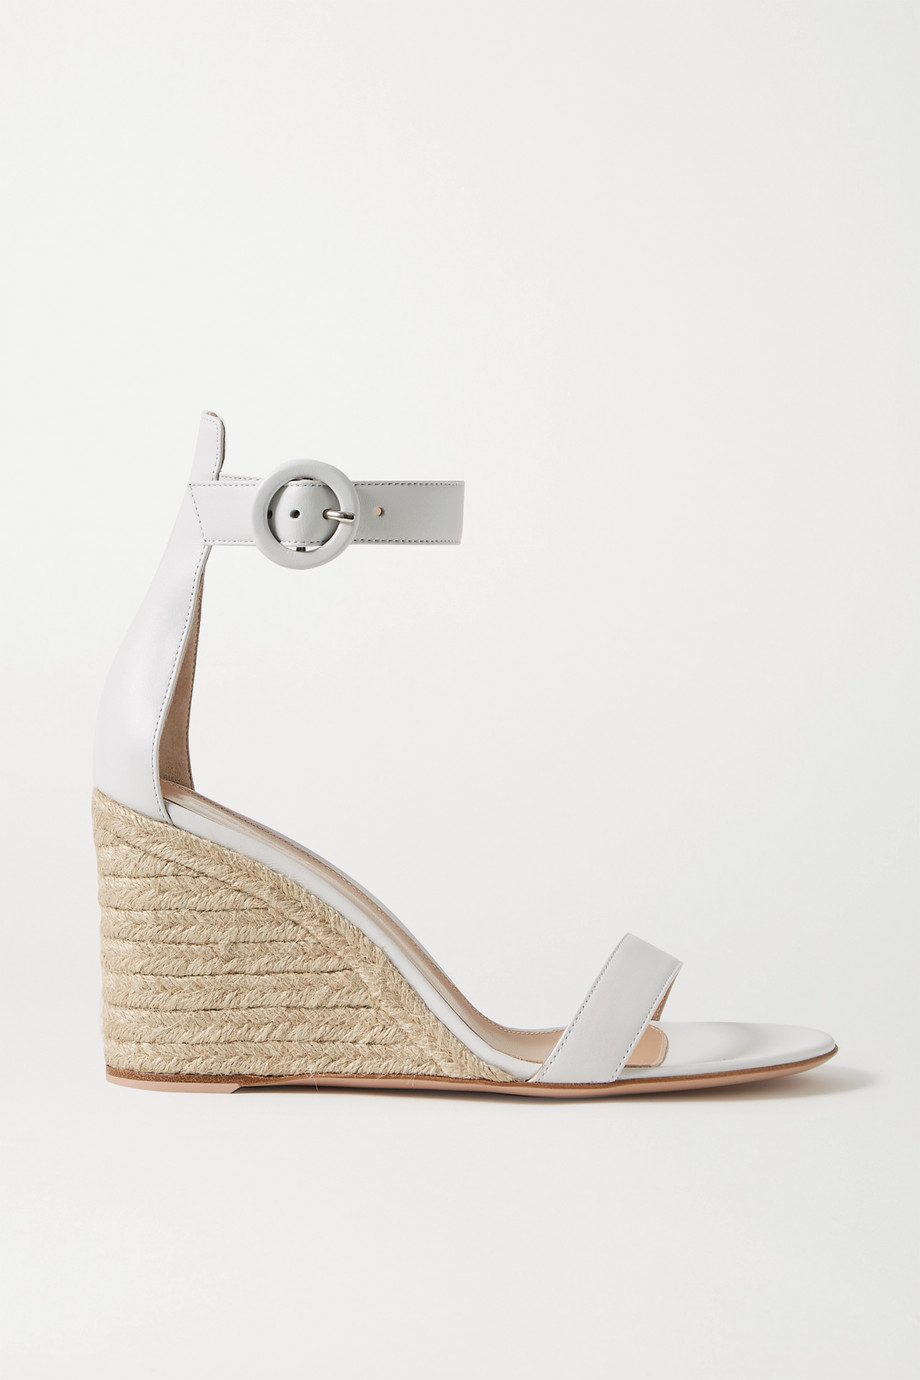 Gianvito Rossi Portofino 85 leather espadrille wedge sandals